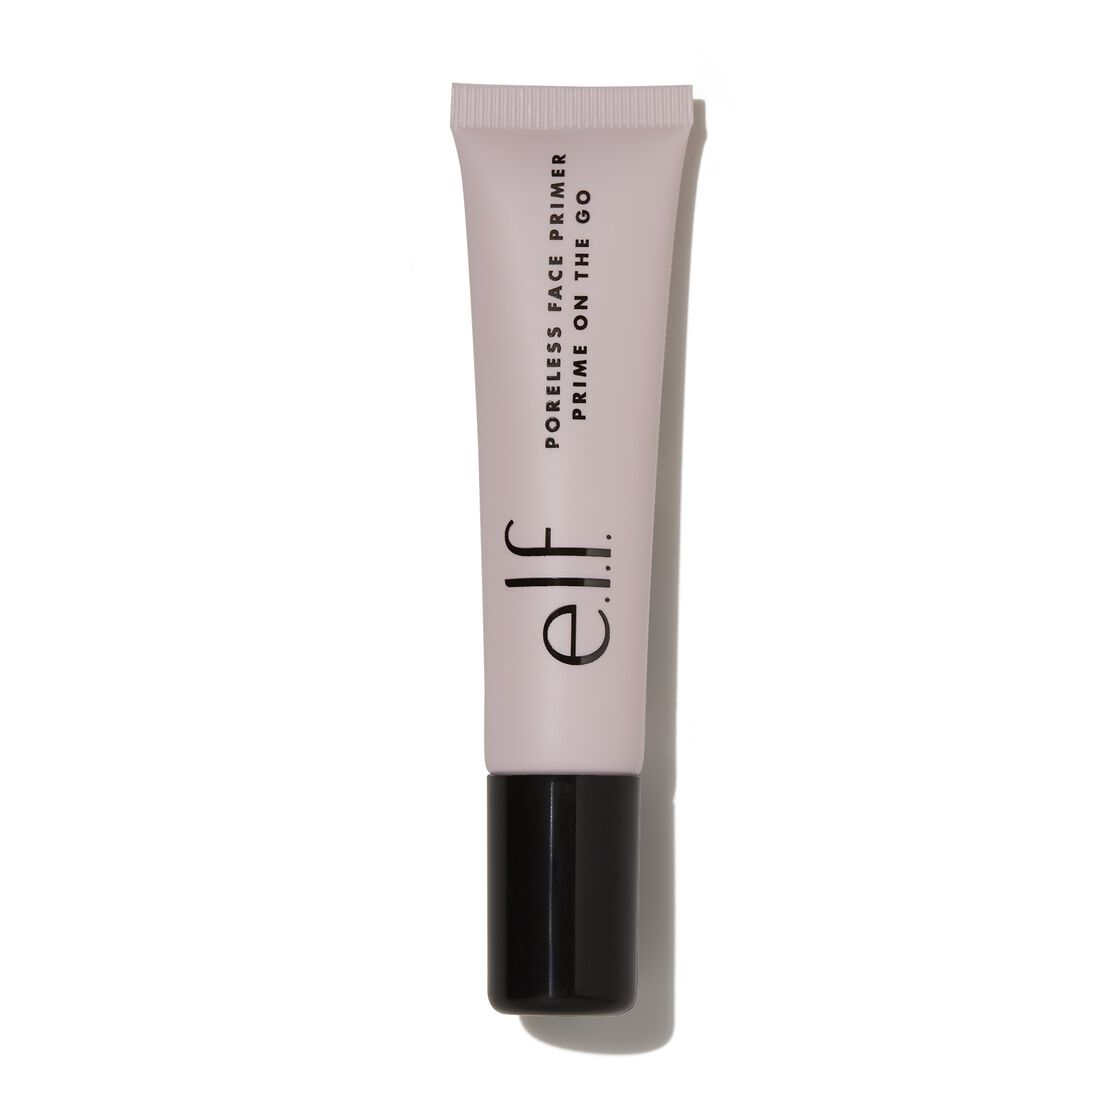 E.l.f Cosmetics - Poreless Face Primer - Travel Size